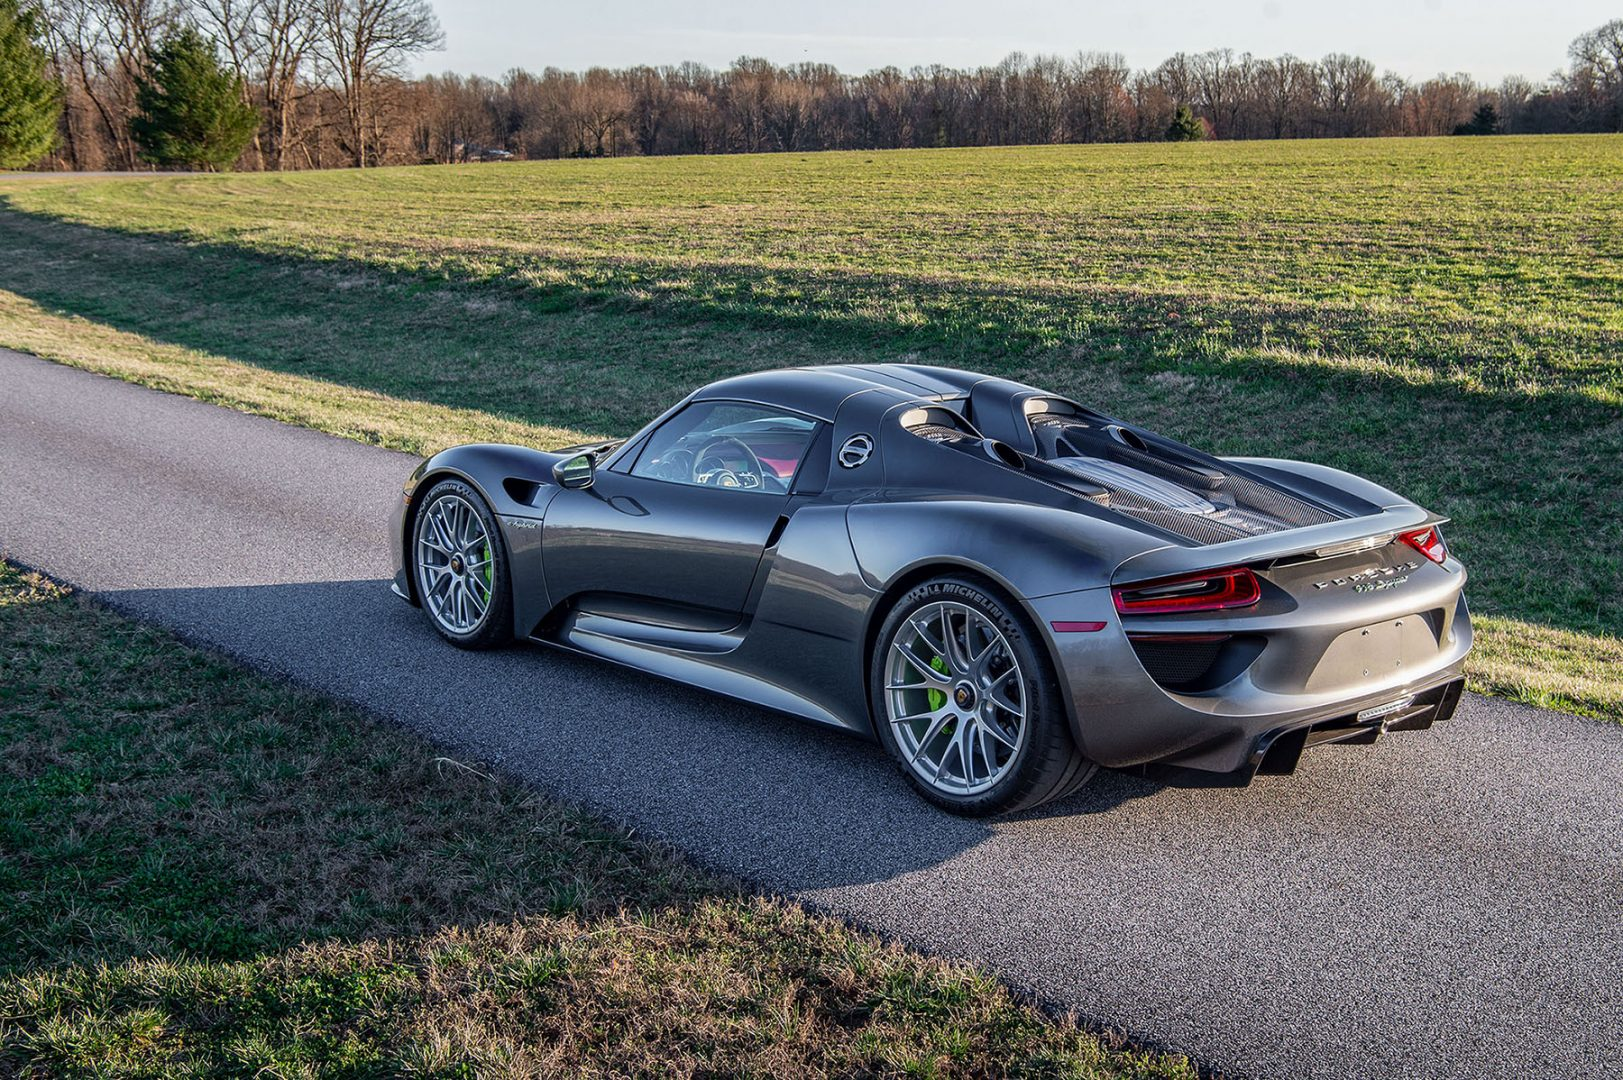 Silver Porsche 918 Spyder rear three-quarter view, view from above, green calipers; Perfect Porsche, PFS Simple Lease